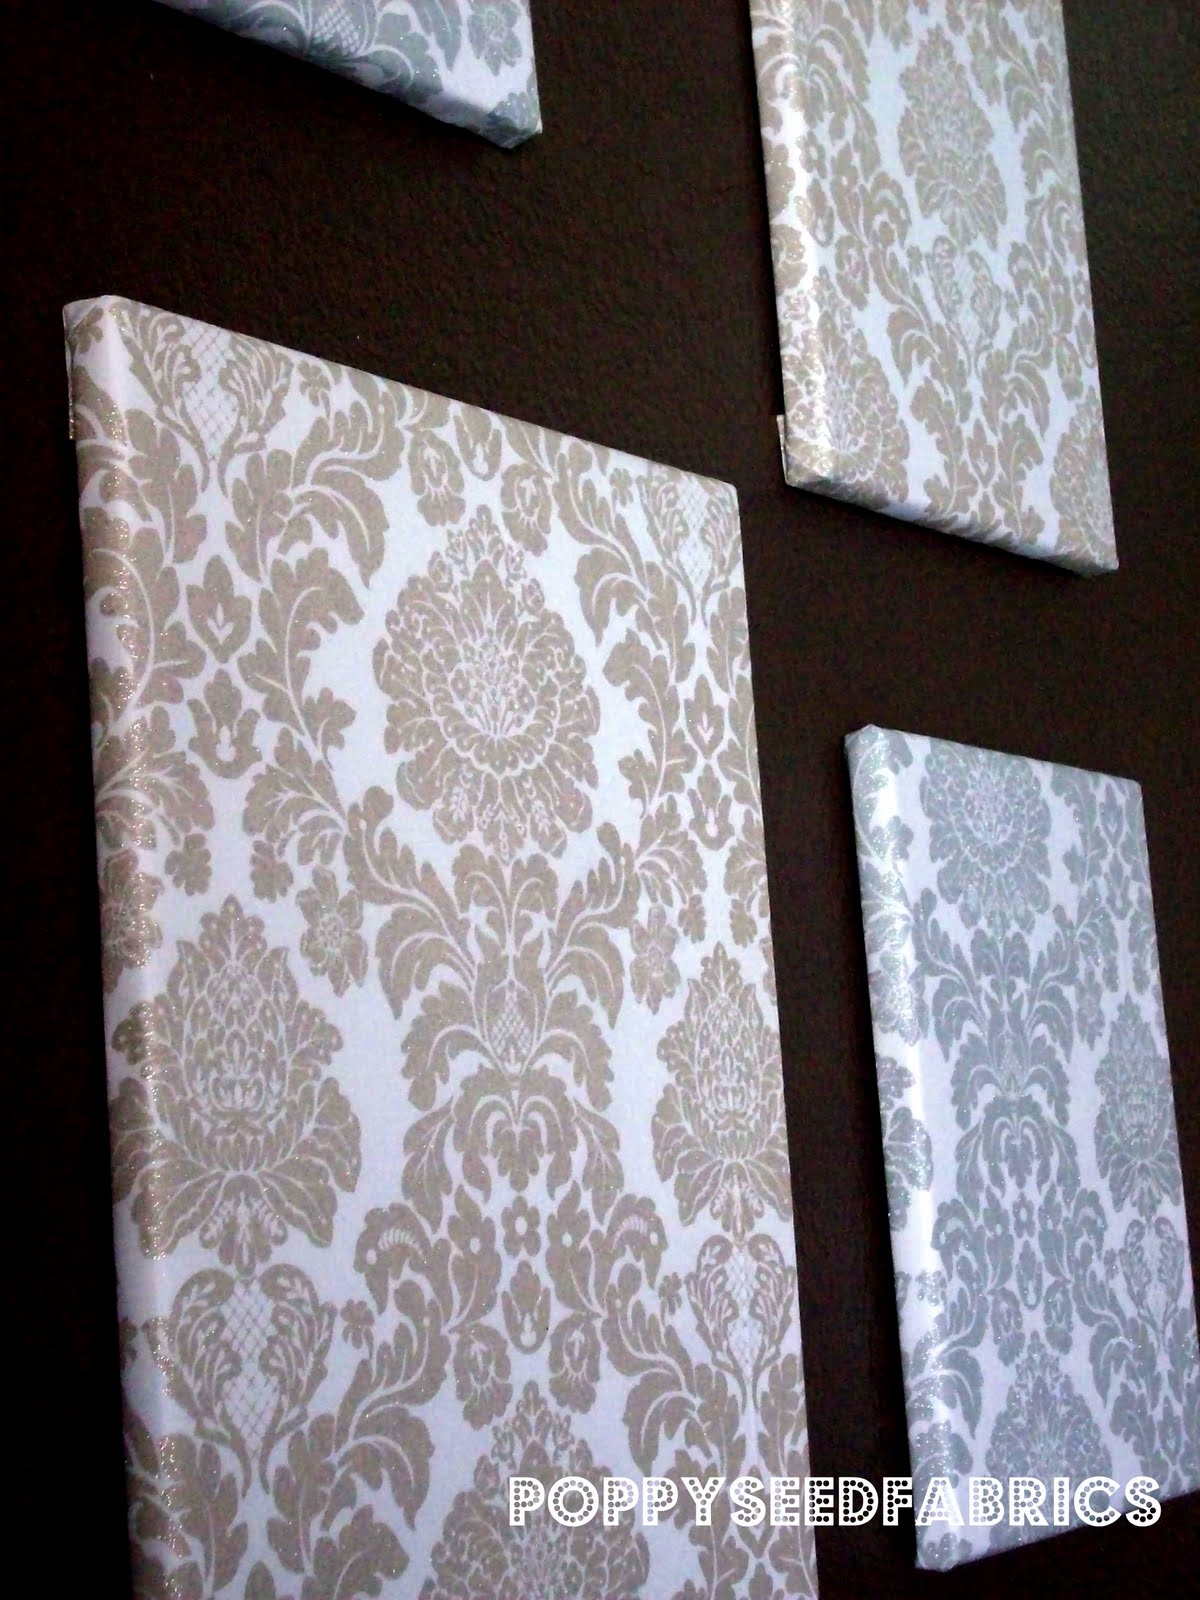 Poppyseed fabrics fabric wall art tutorial for Do it yourself decorative wall painting